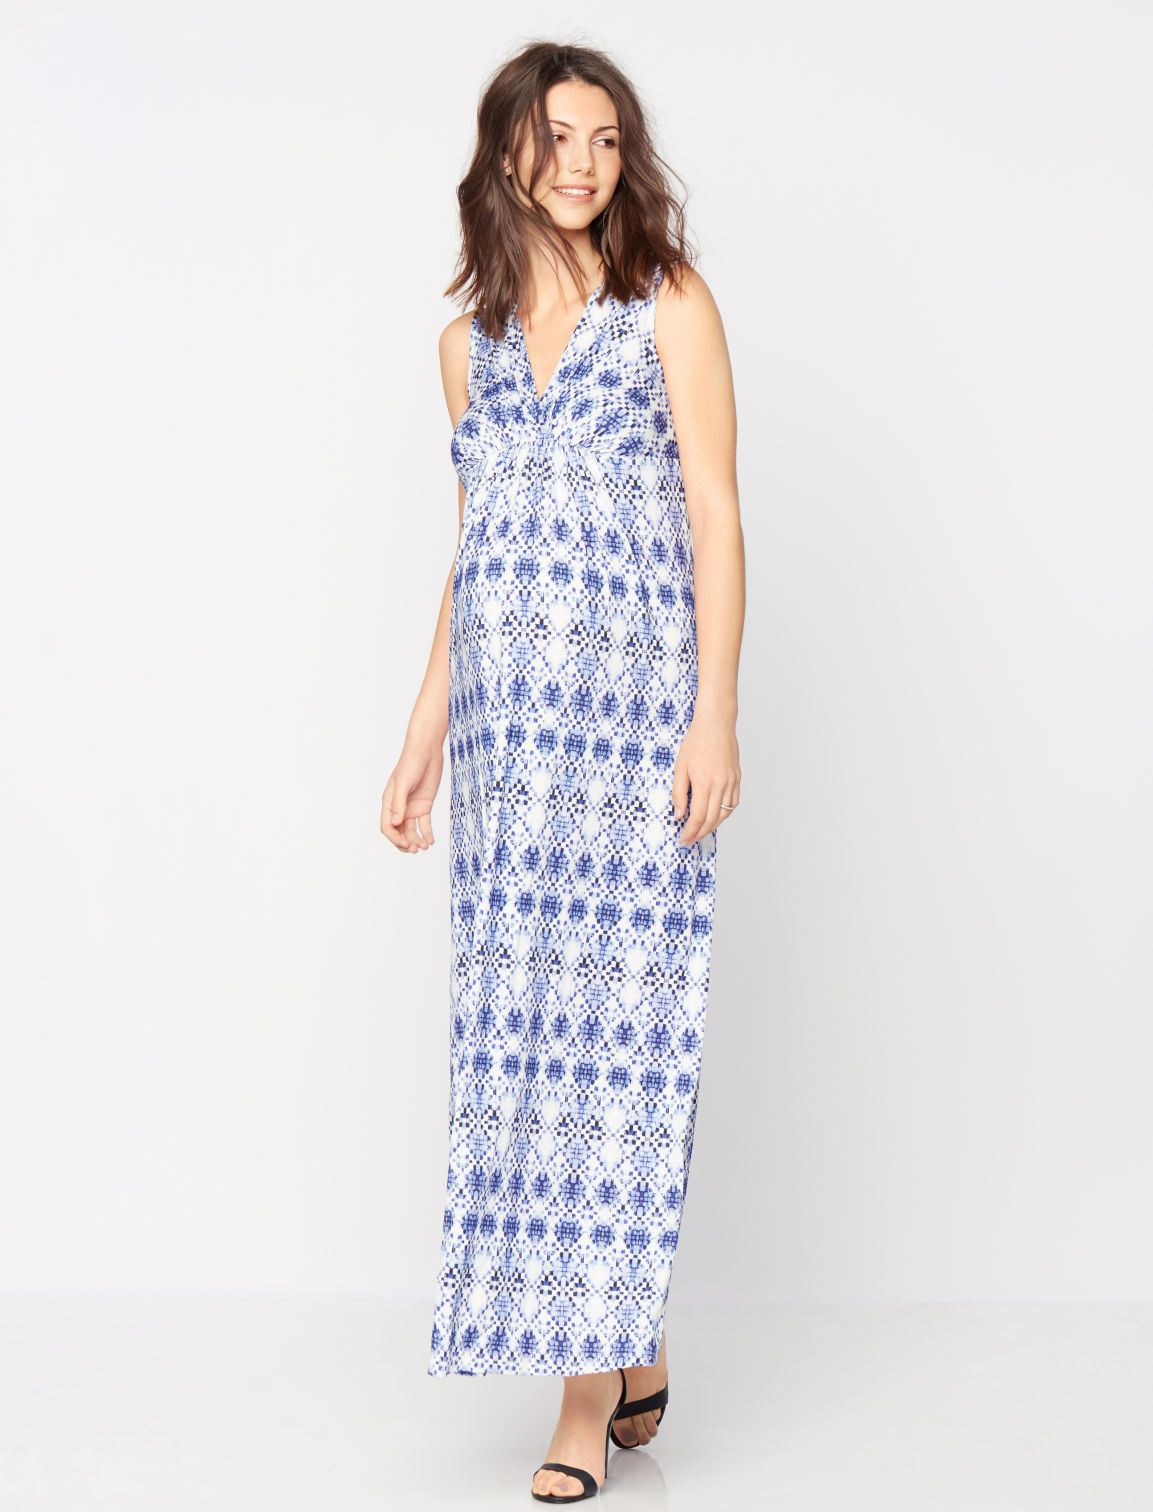 e7175e4cfc0dd Sleeveless ruched maternity maxi dress by Isabella Oliver available at A Pea  in the Pod   Babymoon Packing Essentials